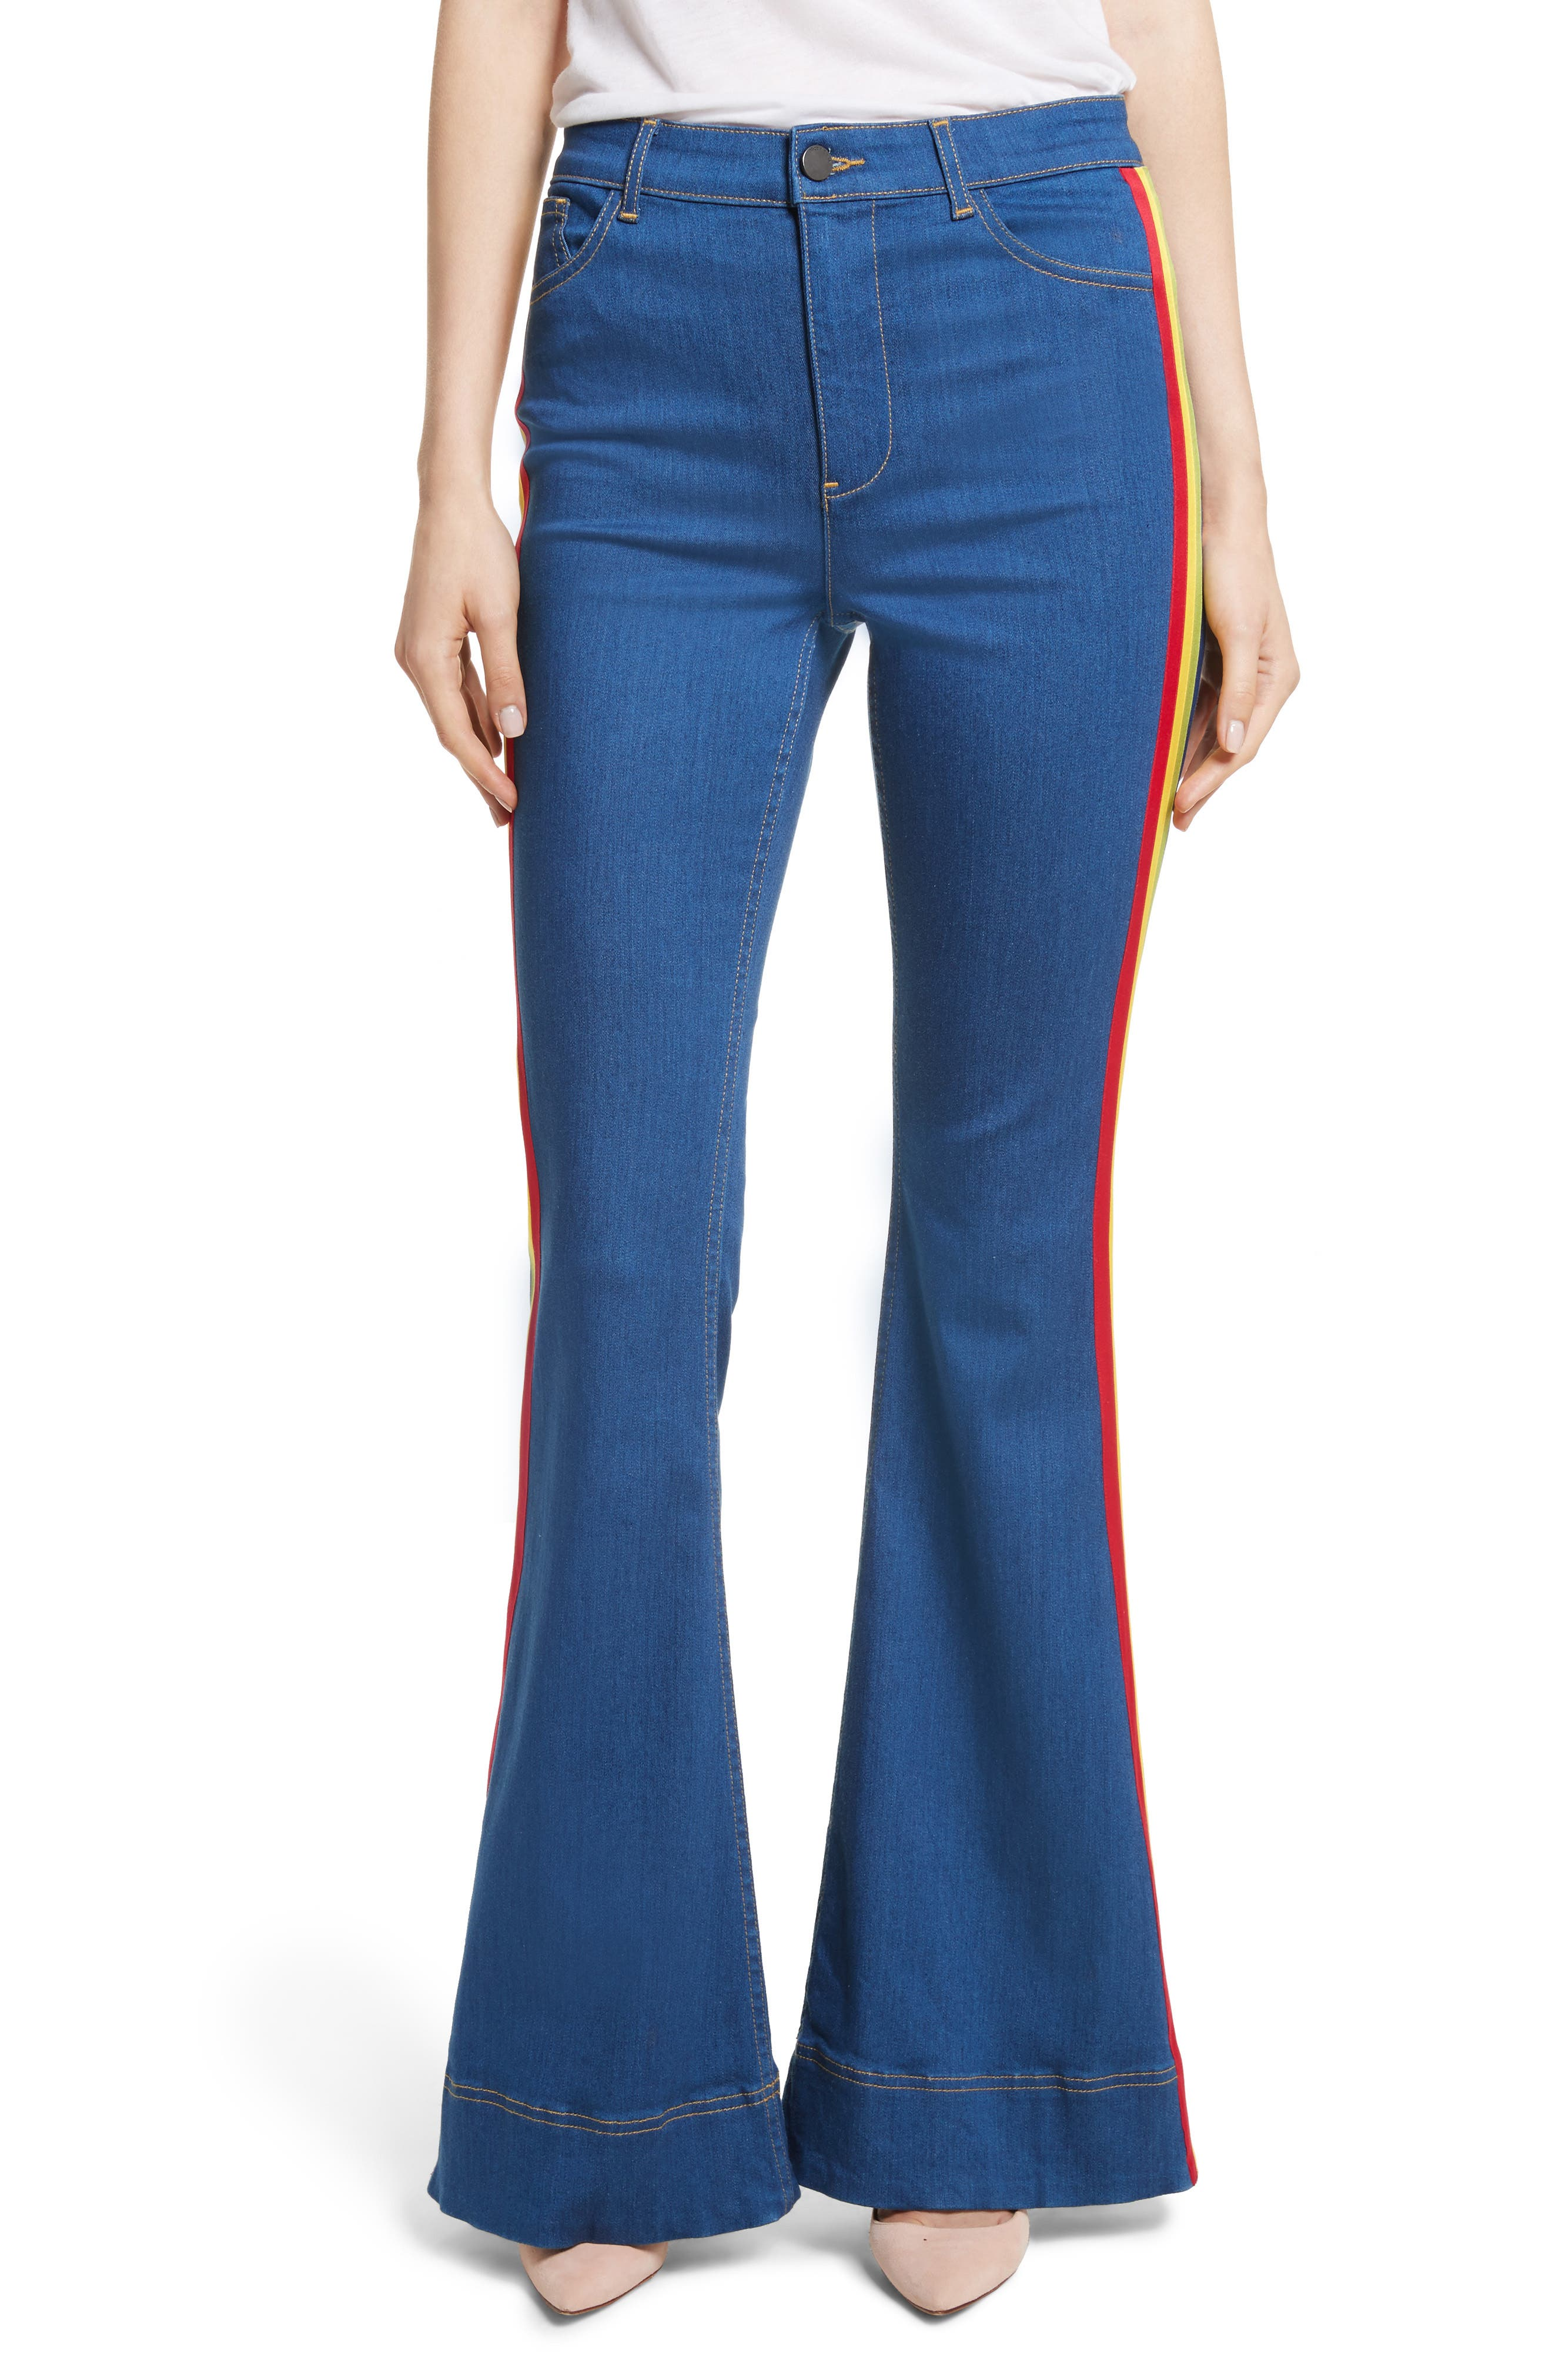 Kayleigh Bell Jeans,                         Main,                         color, French Blue Multi